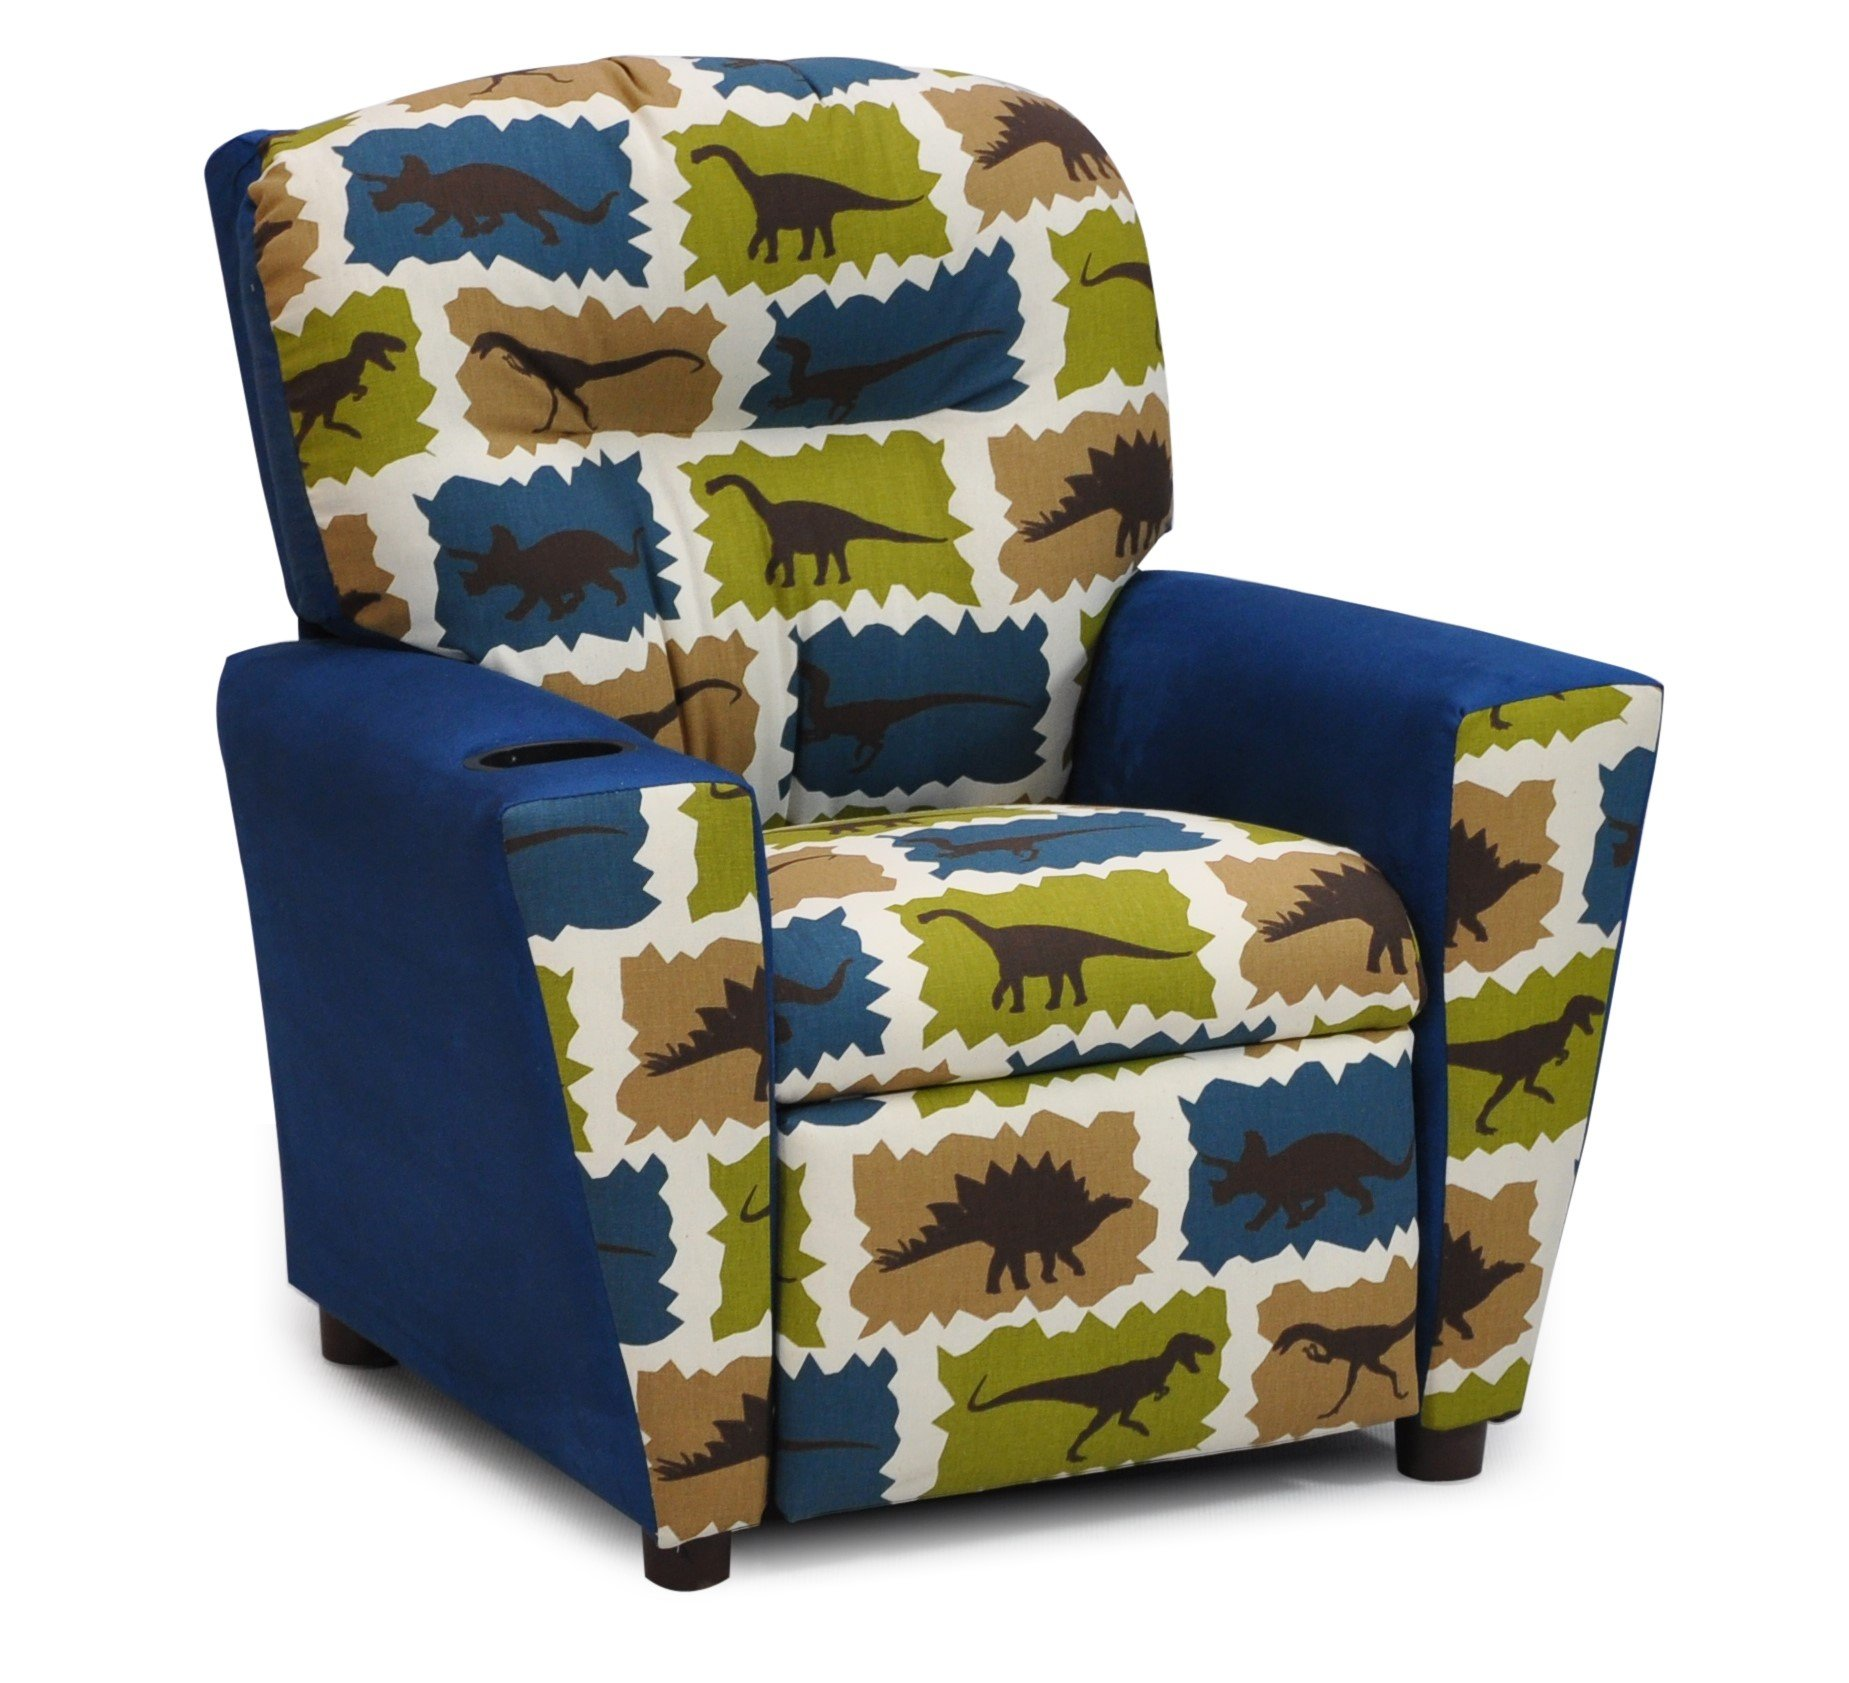 Dinosaur Childs Upholstered Reclining Armchair with Cup Holders | Kids Toddler Gender Neutral Recliner Chair, Bedroom Decor Furniture for Children, Girls and Boys Easy Care Seating (Blue Dino)